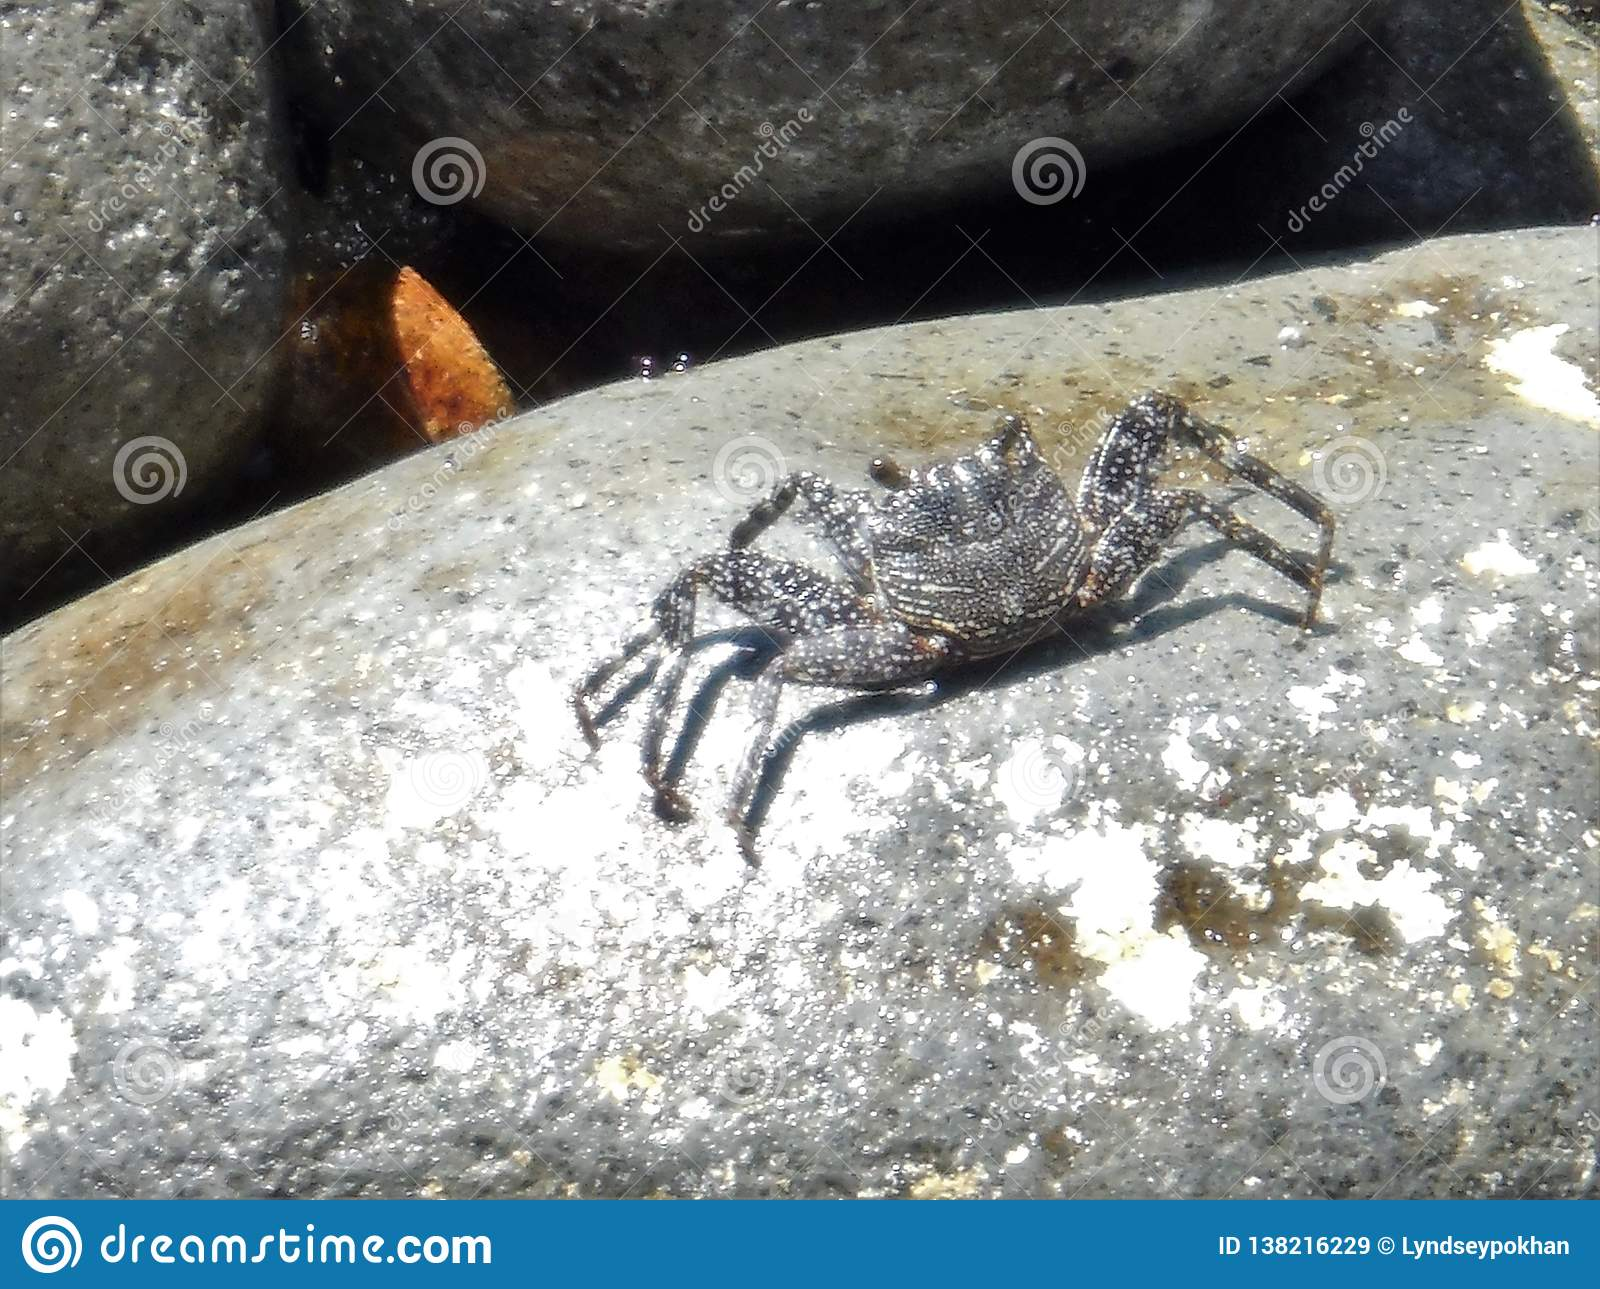 Crab on a rock in Dominica